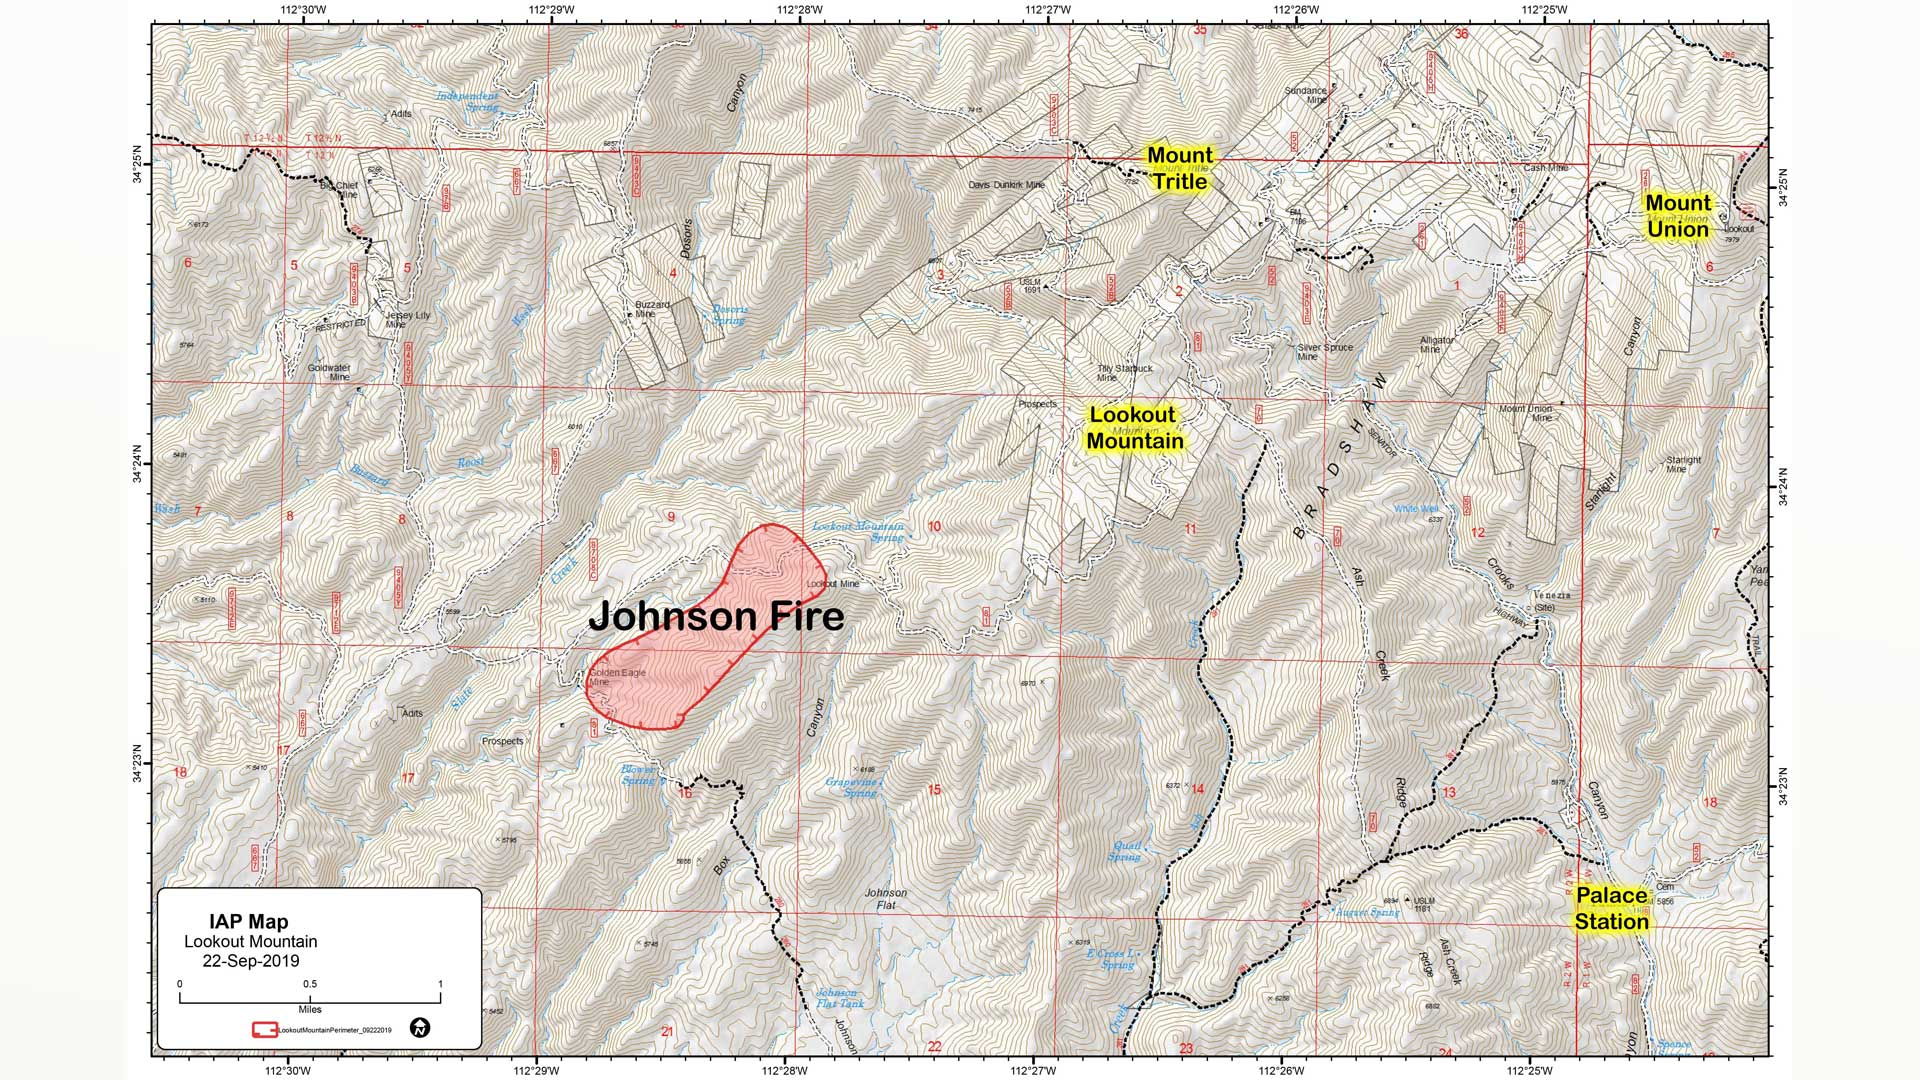 A map showing the approximate location and perimeter of the Johnson Fire near Prescott, dated Sept. 22, 2019.